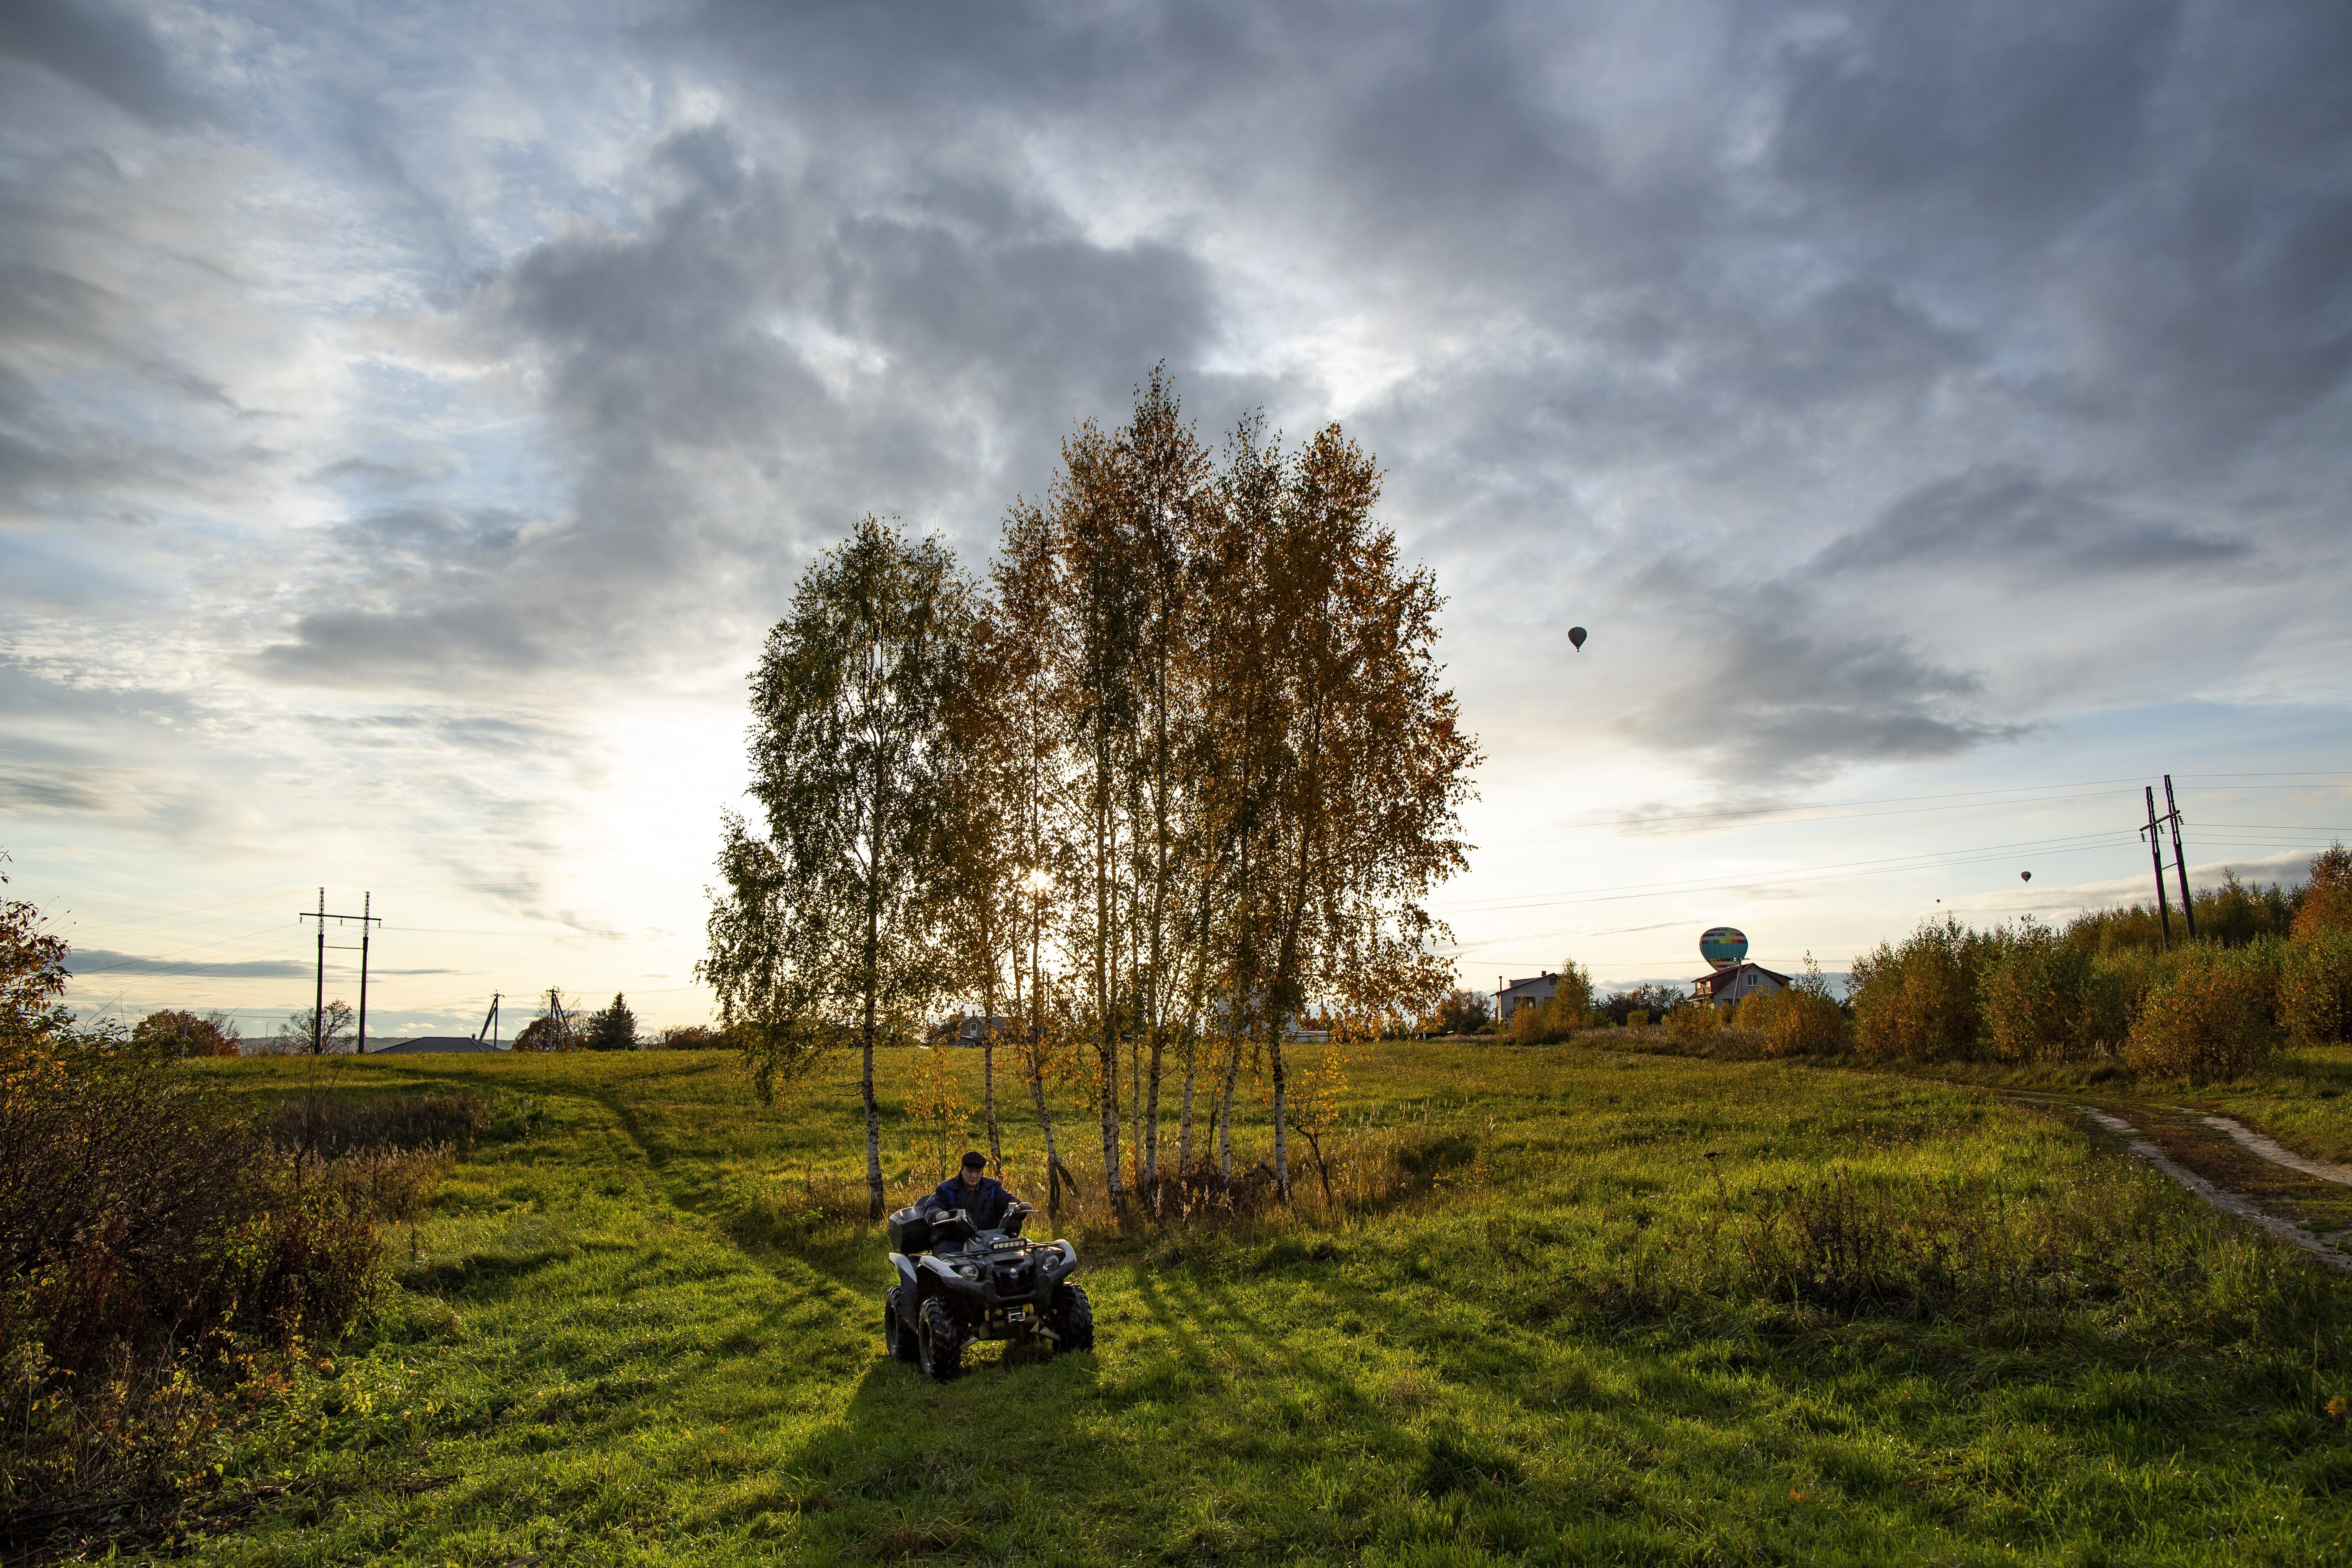 A man rides an all-terrain vehicle through an autumn field during sunset near Peremilovo village, 65 km (40,6 miles) north of Moscow, Russia, Saturday, Oct. 5, 2019. (AP Photo/Alexander Zemlianichenko)